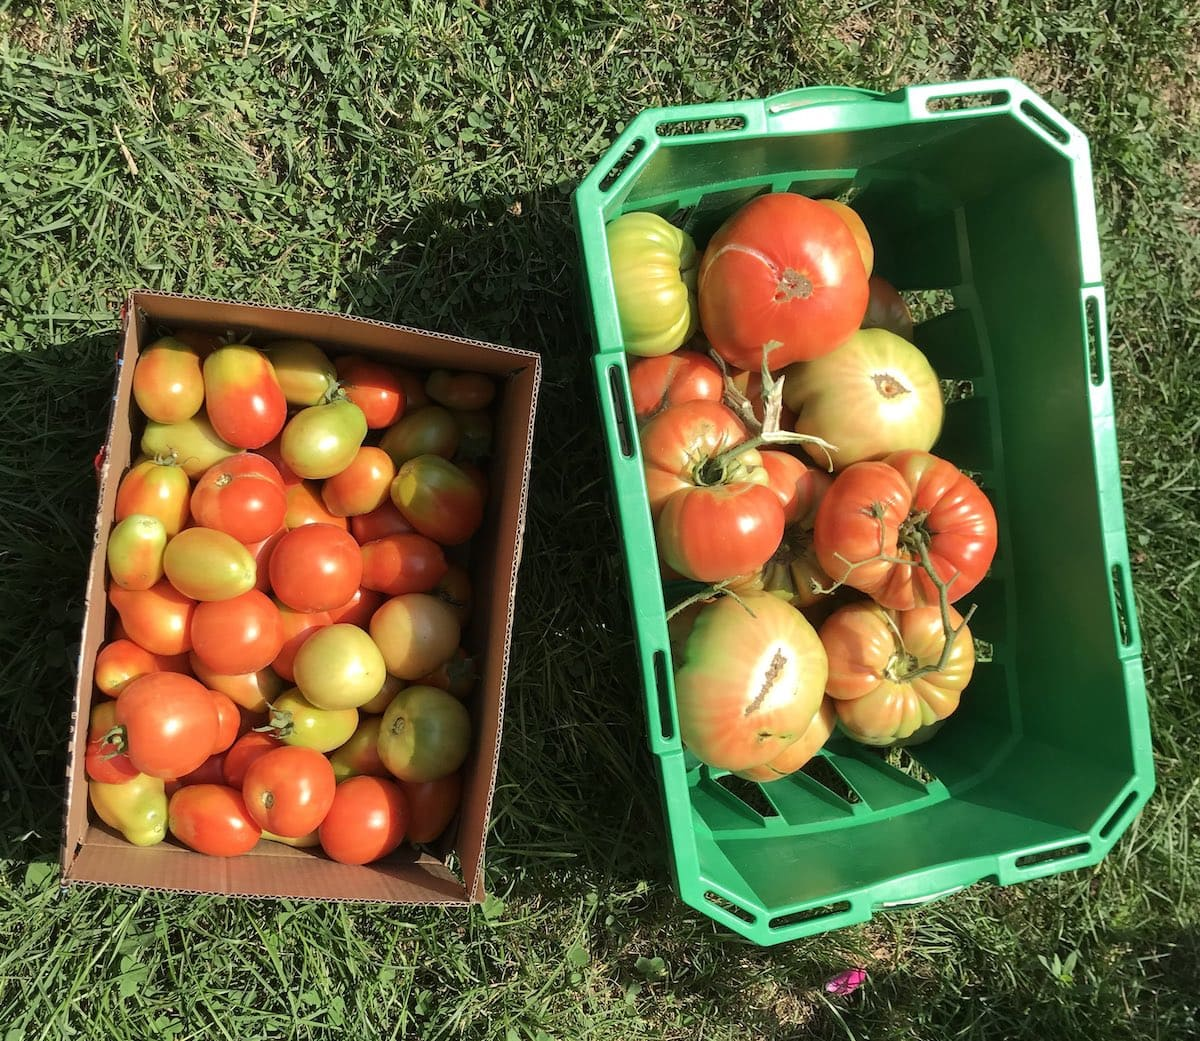 Fresh garden tomatoes in boxes.